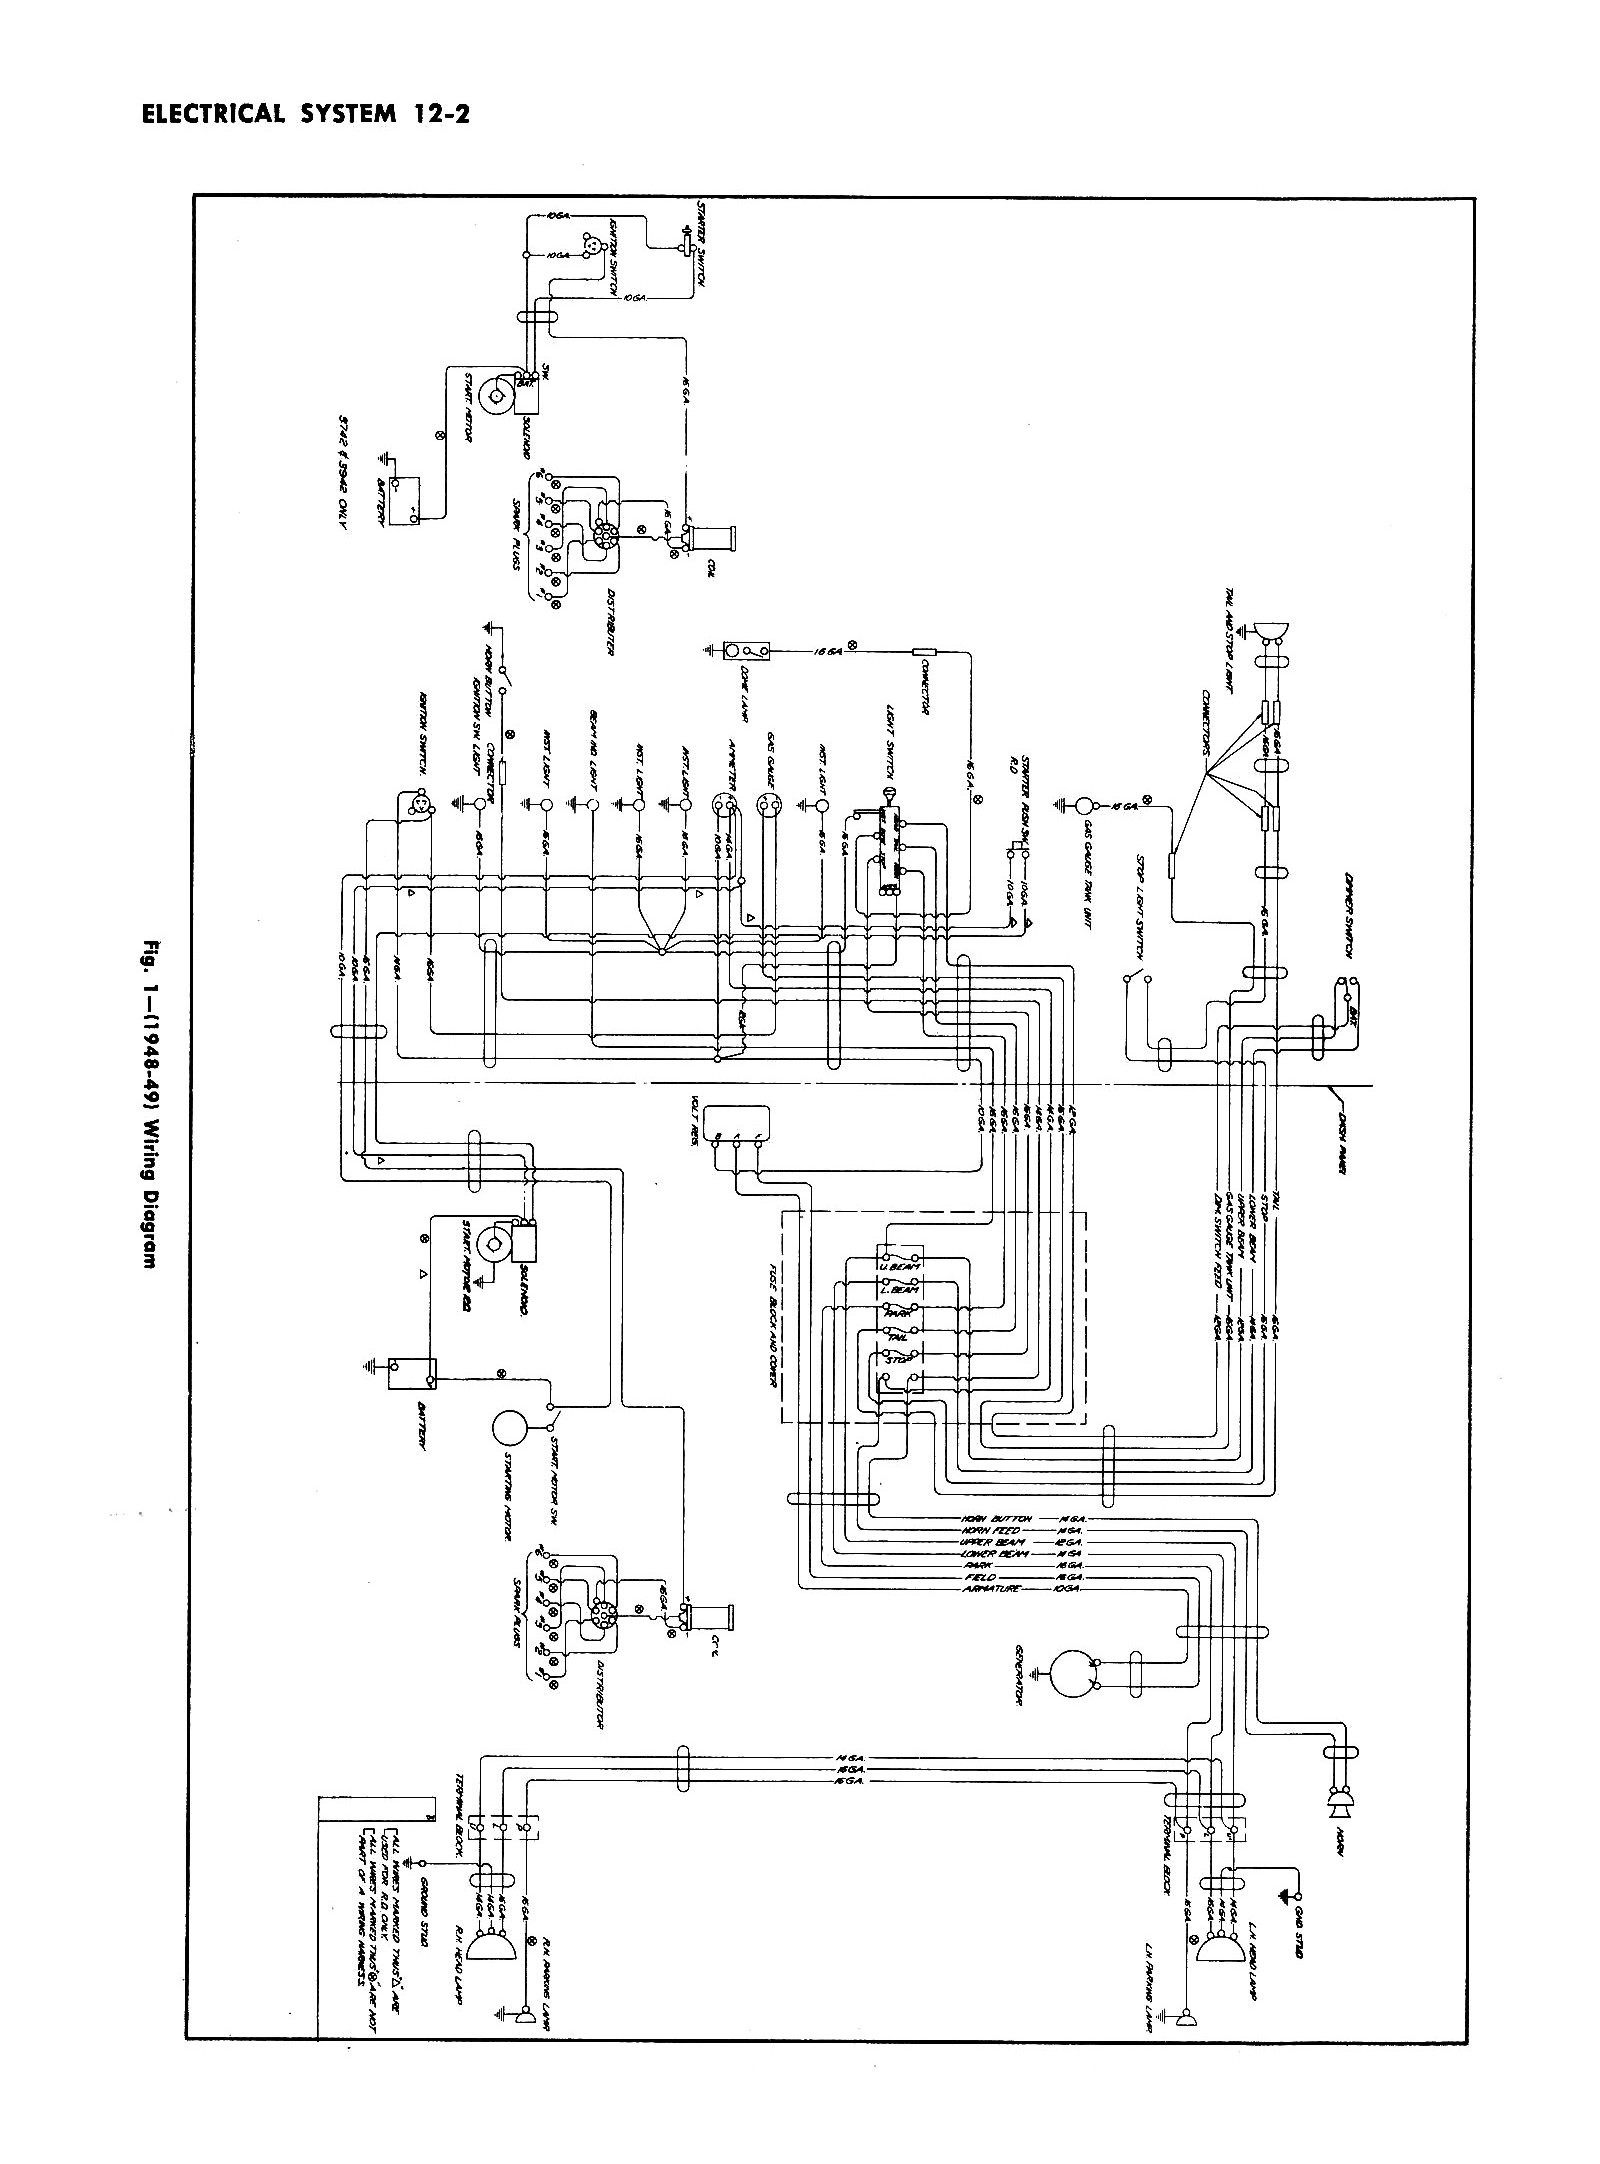 48car gmc ke switch wiring diagram wiring diagram simonand gm truck wiring harness at bayanpartner.co